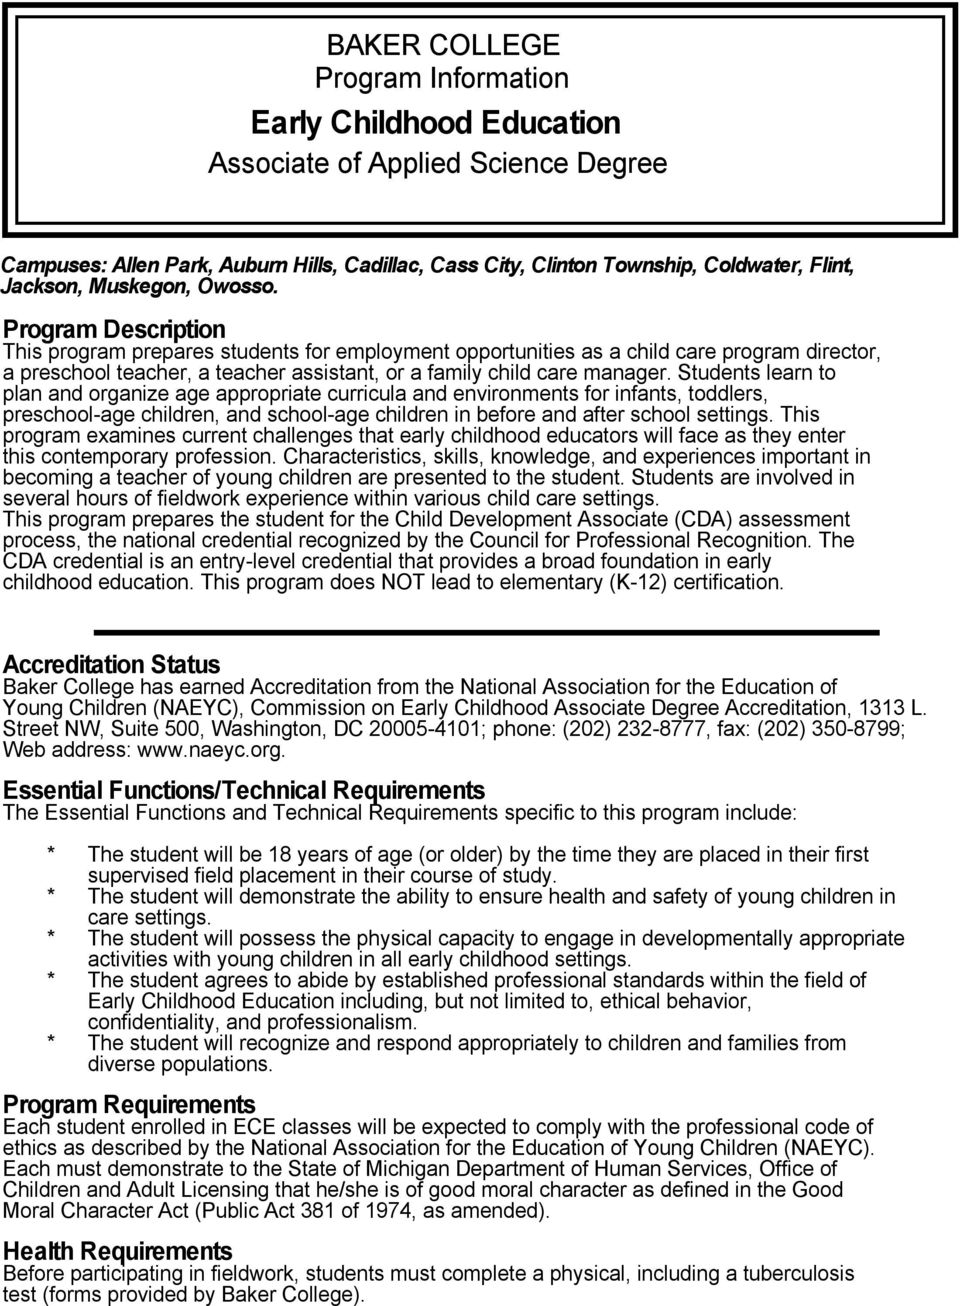 Program Description This program prepares students for employment opportunities as a child care program director, a preschool teacher, a teacher assistant, or a family child care manager.